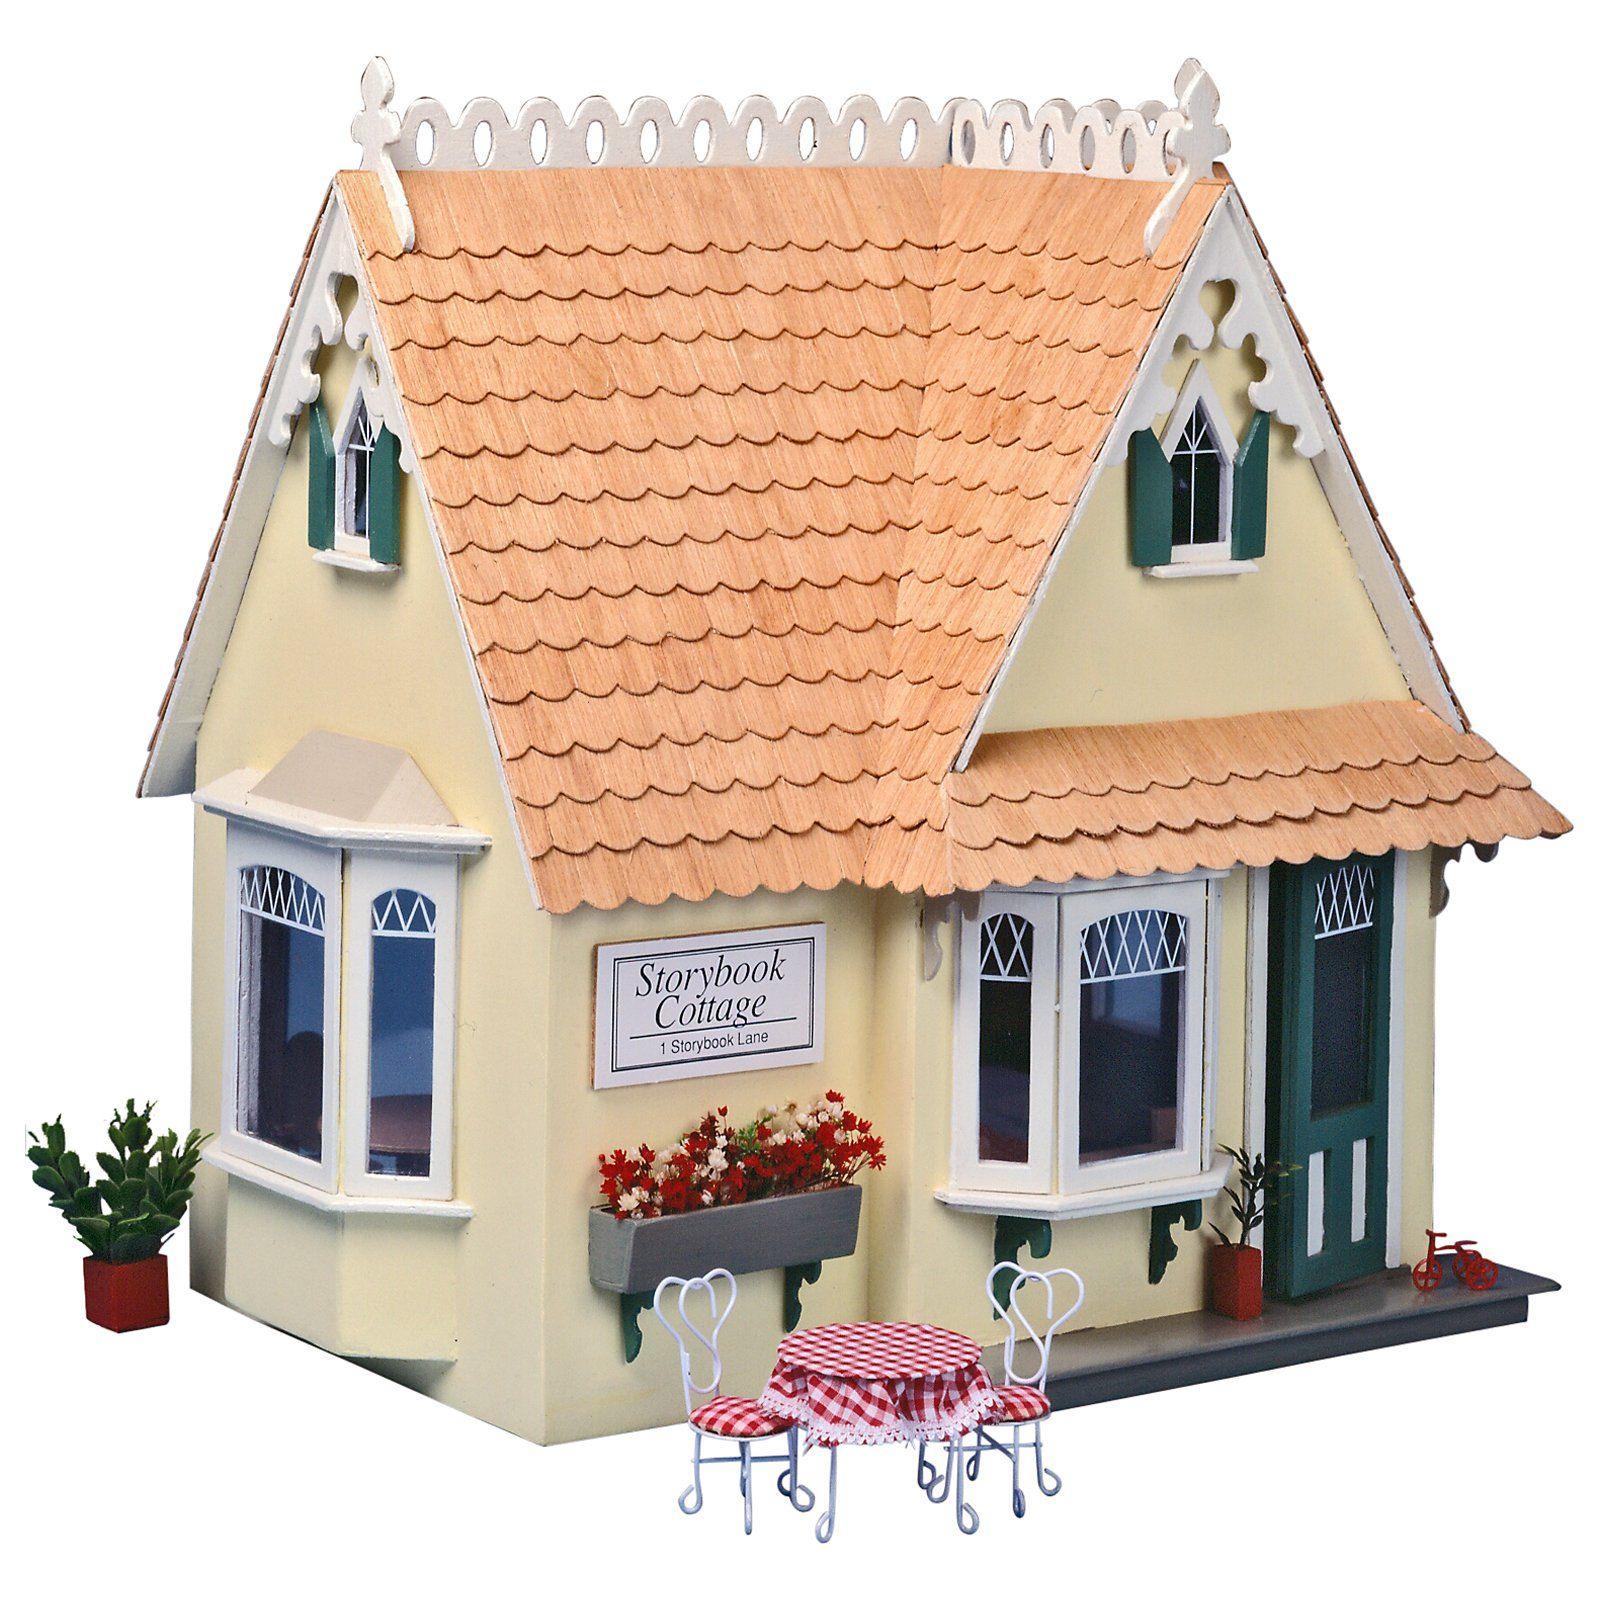 Greenleaf Storybook Cottage Dollhouse Kit  1 Inch Scale $4999